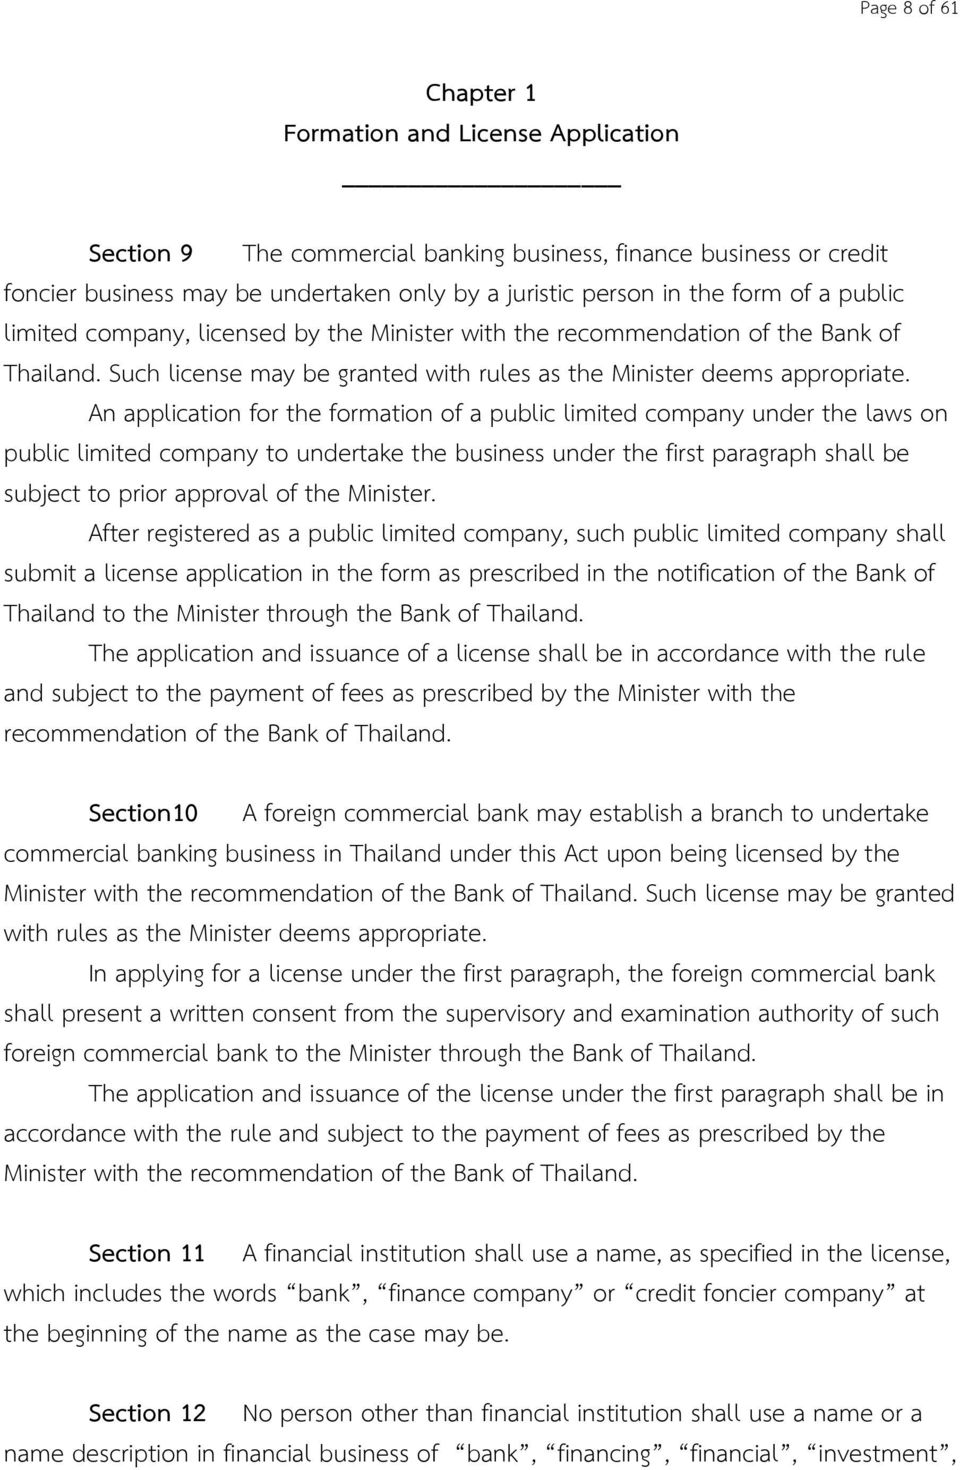 An application for the formation of a public limited company under the laws on public limited company to undertake the business under the first paragraph shall be subject to prior approval of the